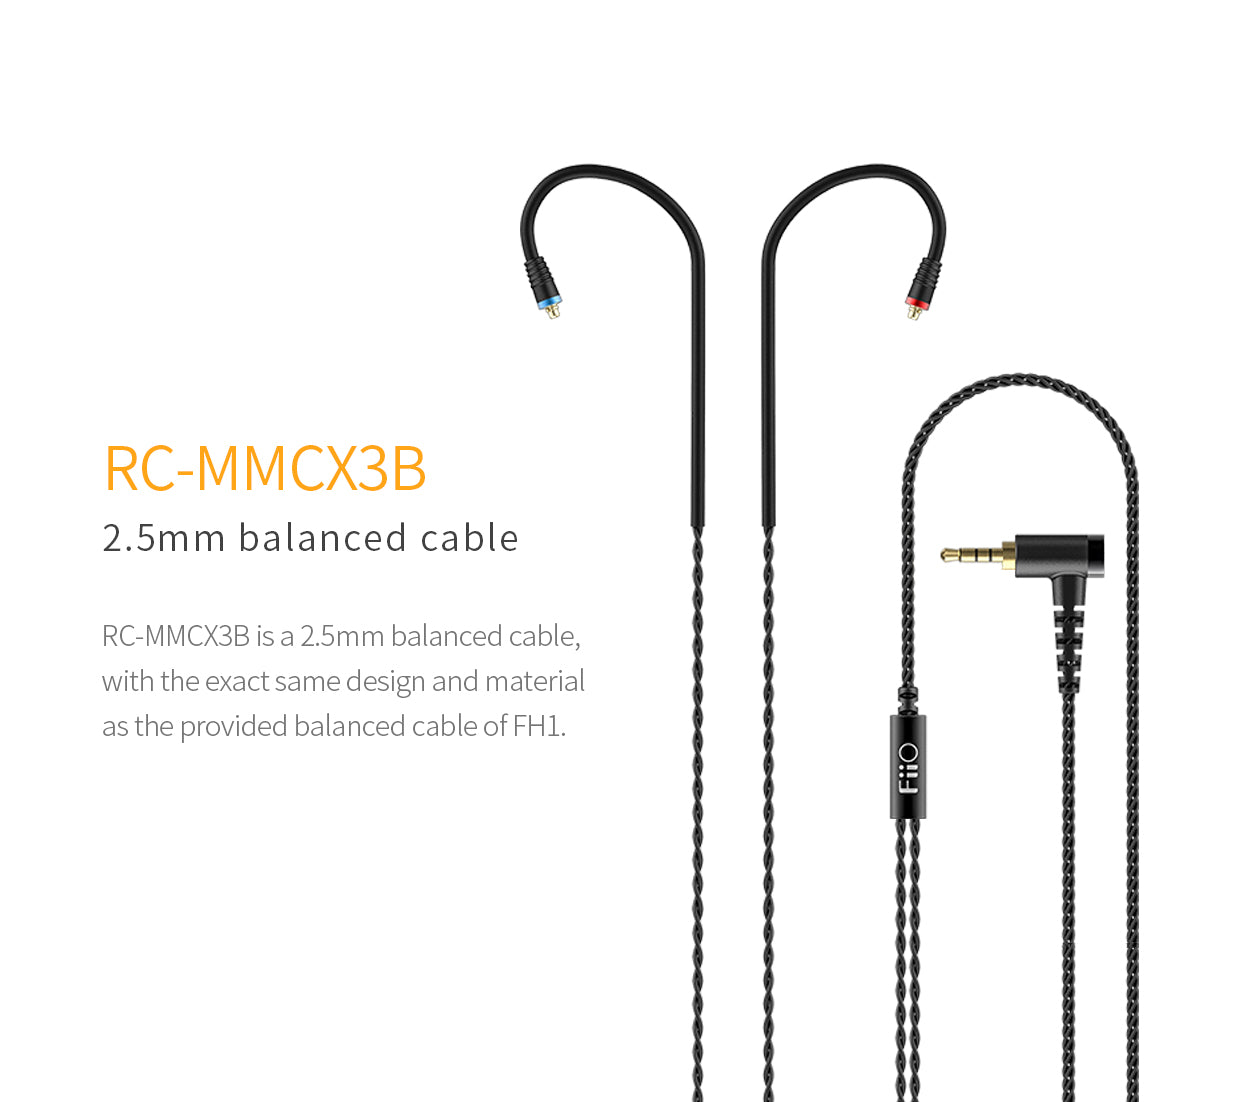 2.5mm balanced cable